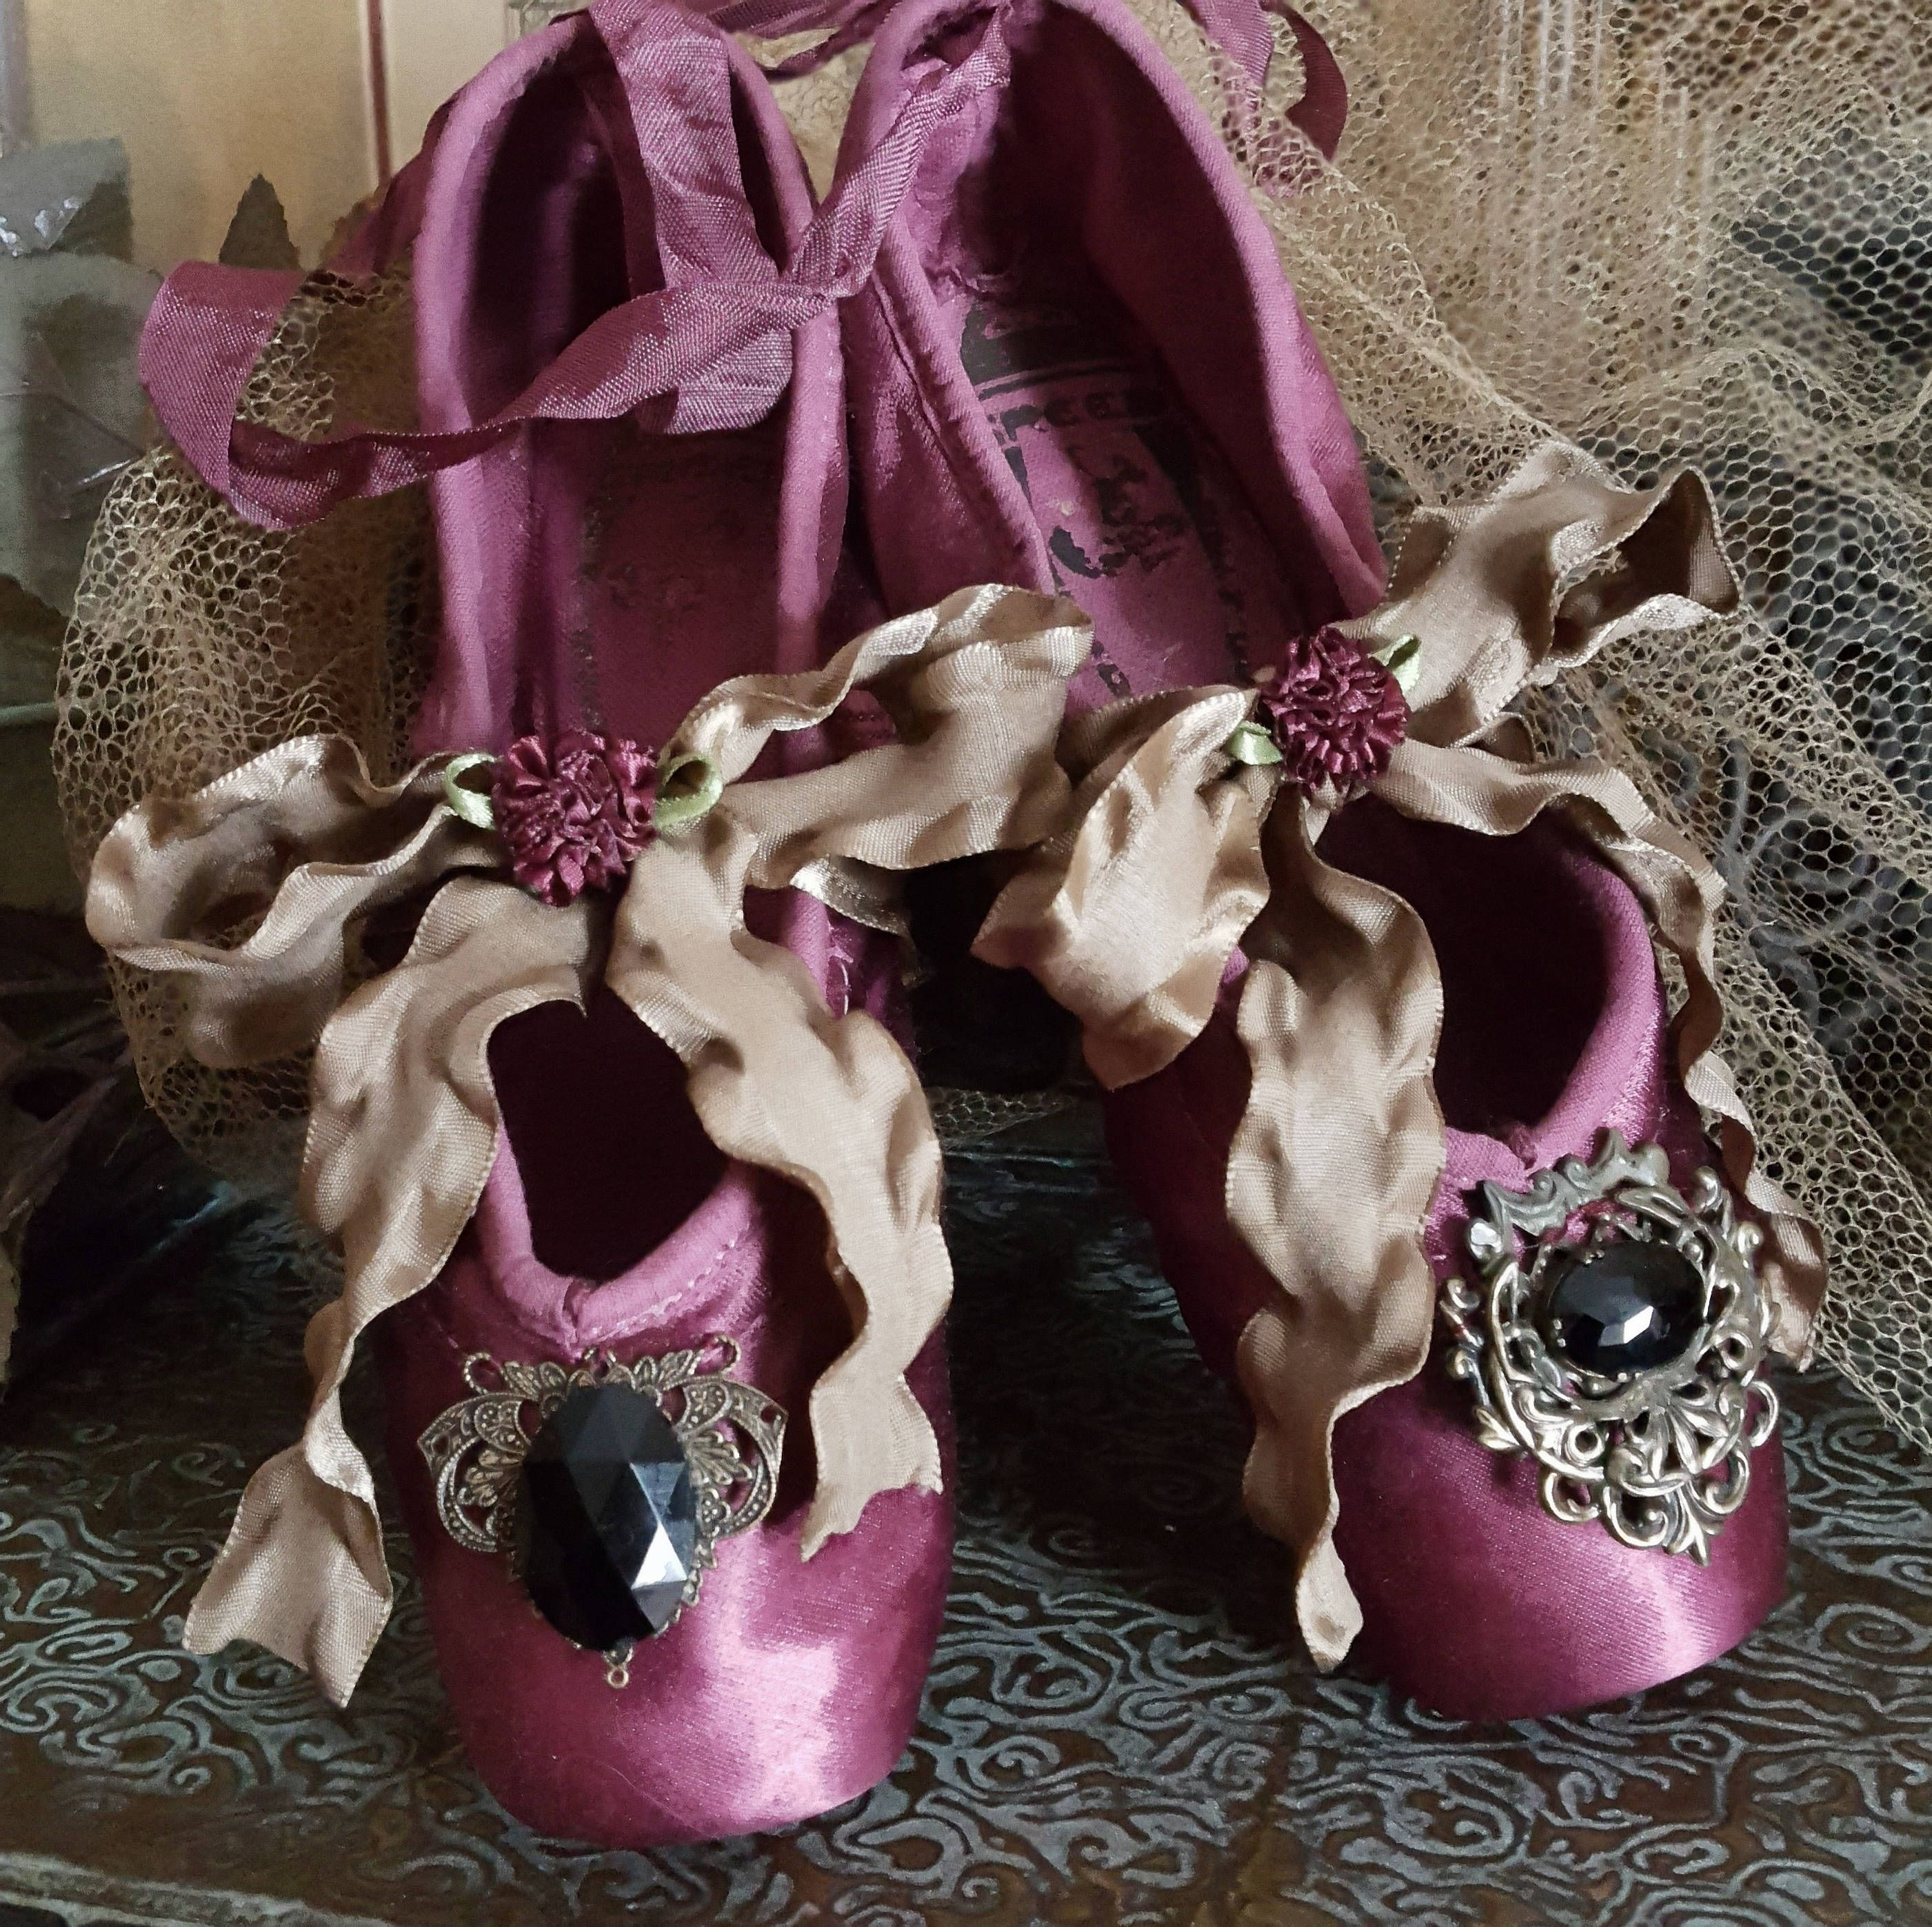 Vintage Ballet Pointe Shoes by Freed Variegated Deep Royal